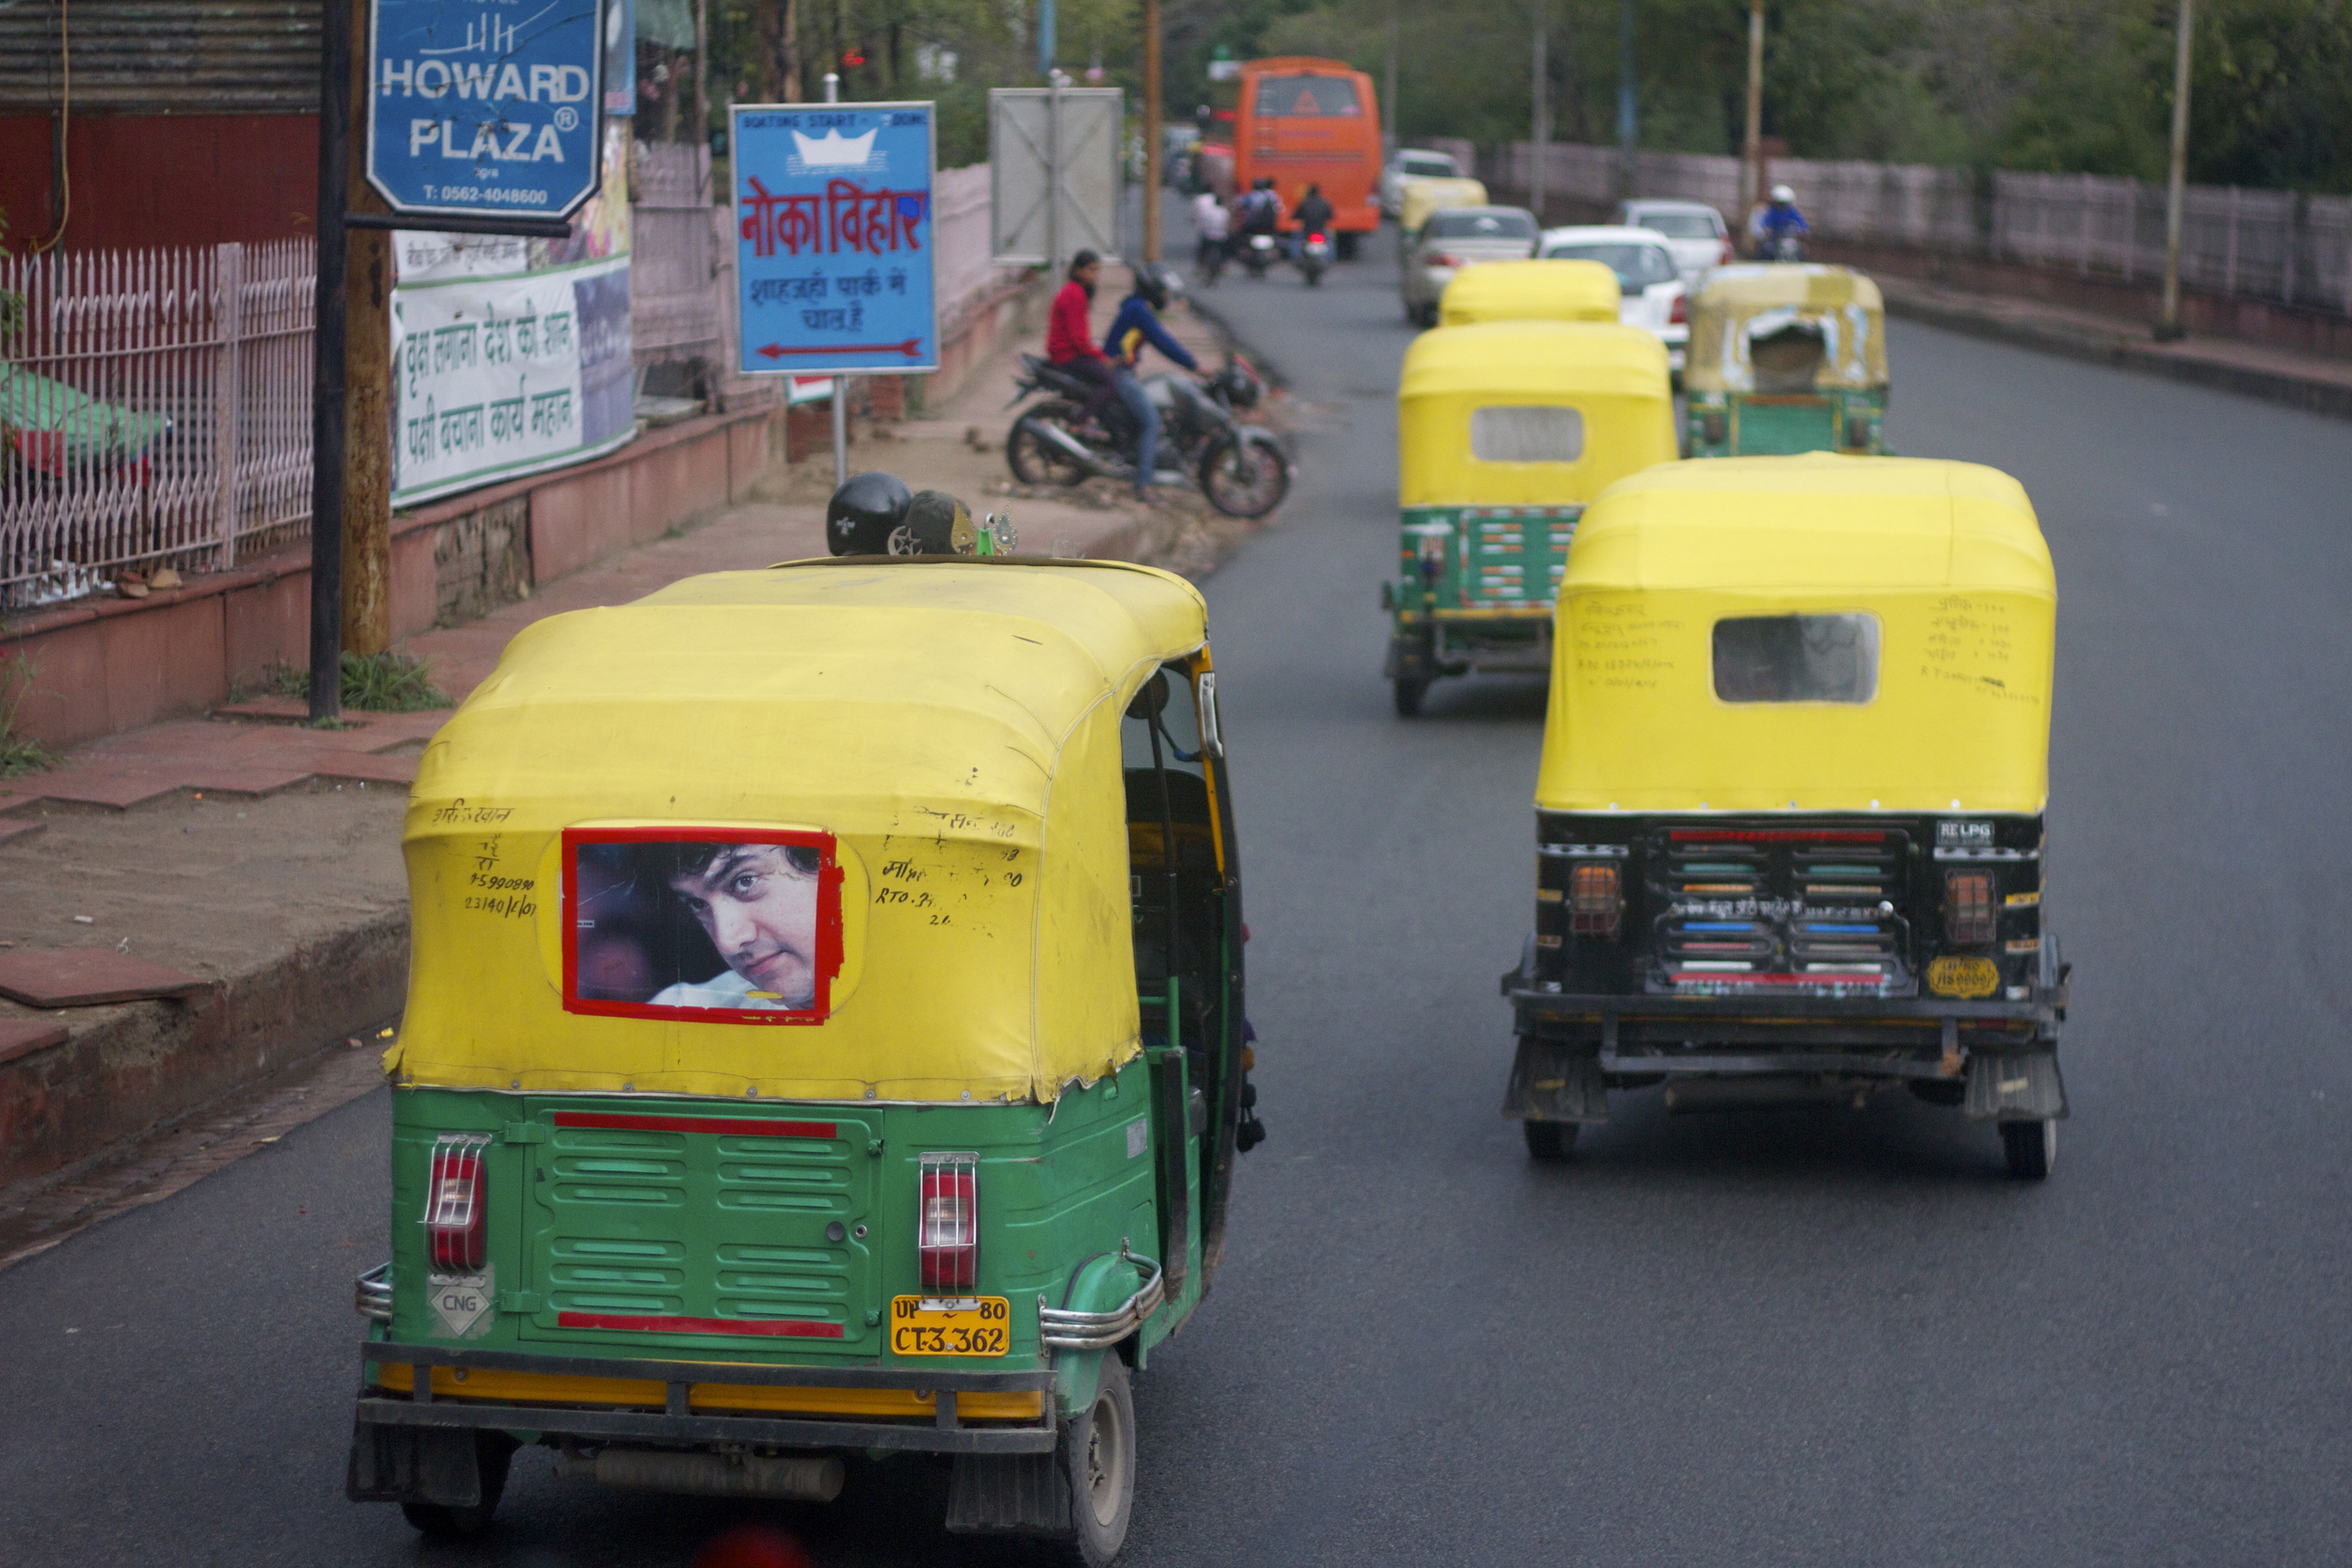 Tuk tuks drive through the streets of New Delhi, India.